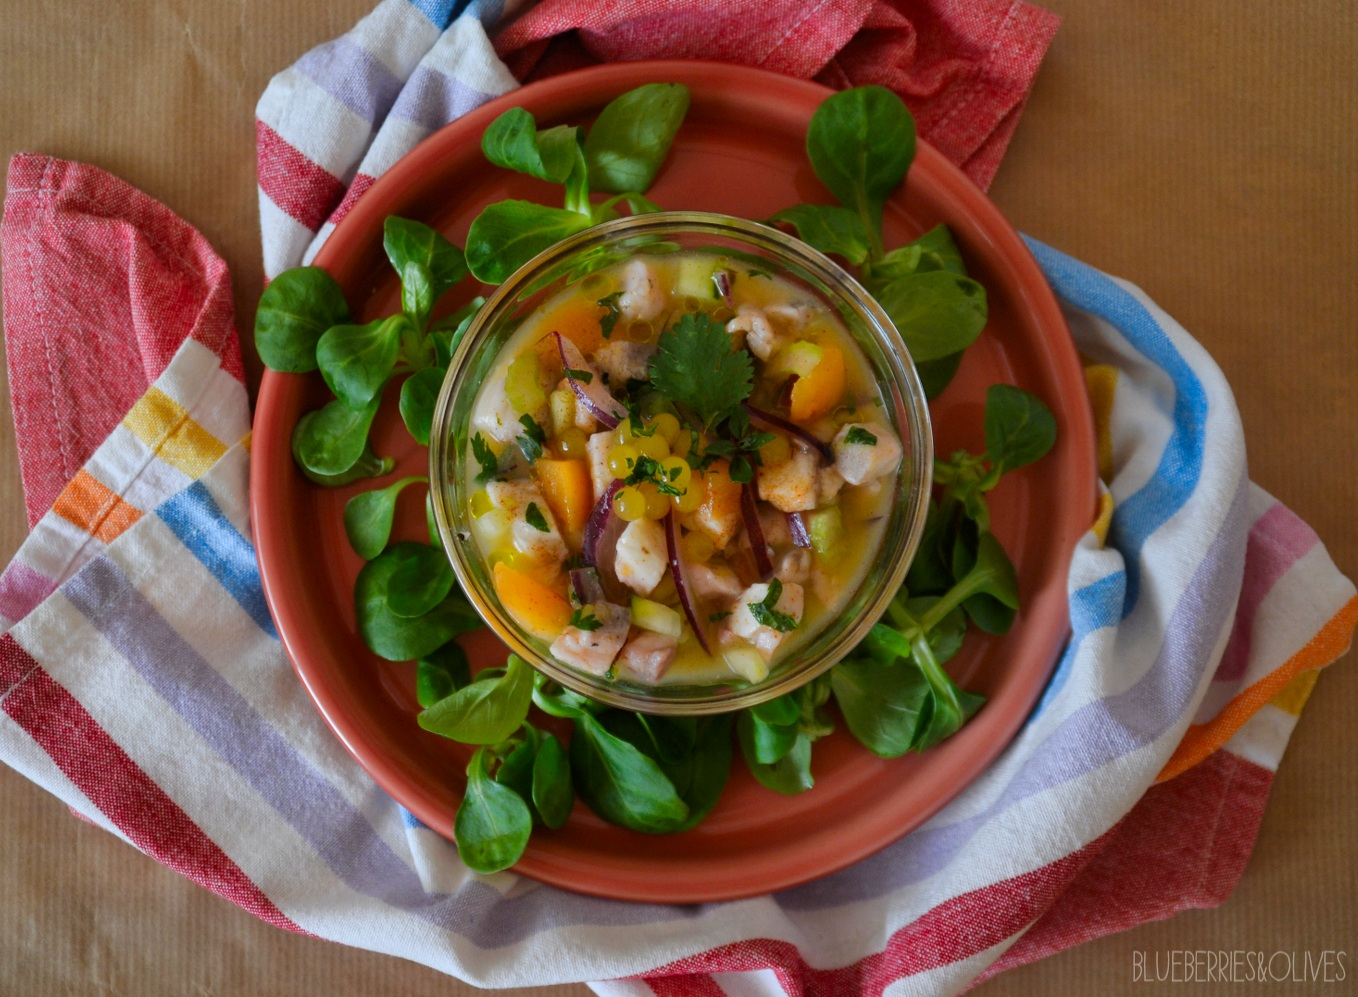 CROAKER FISH CEVICHE WITH LOQUATS AND CITRUSES